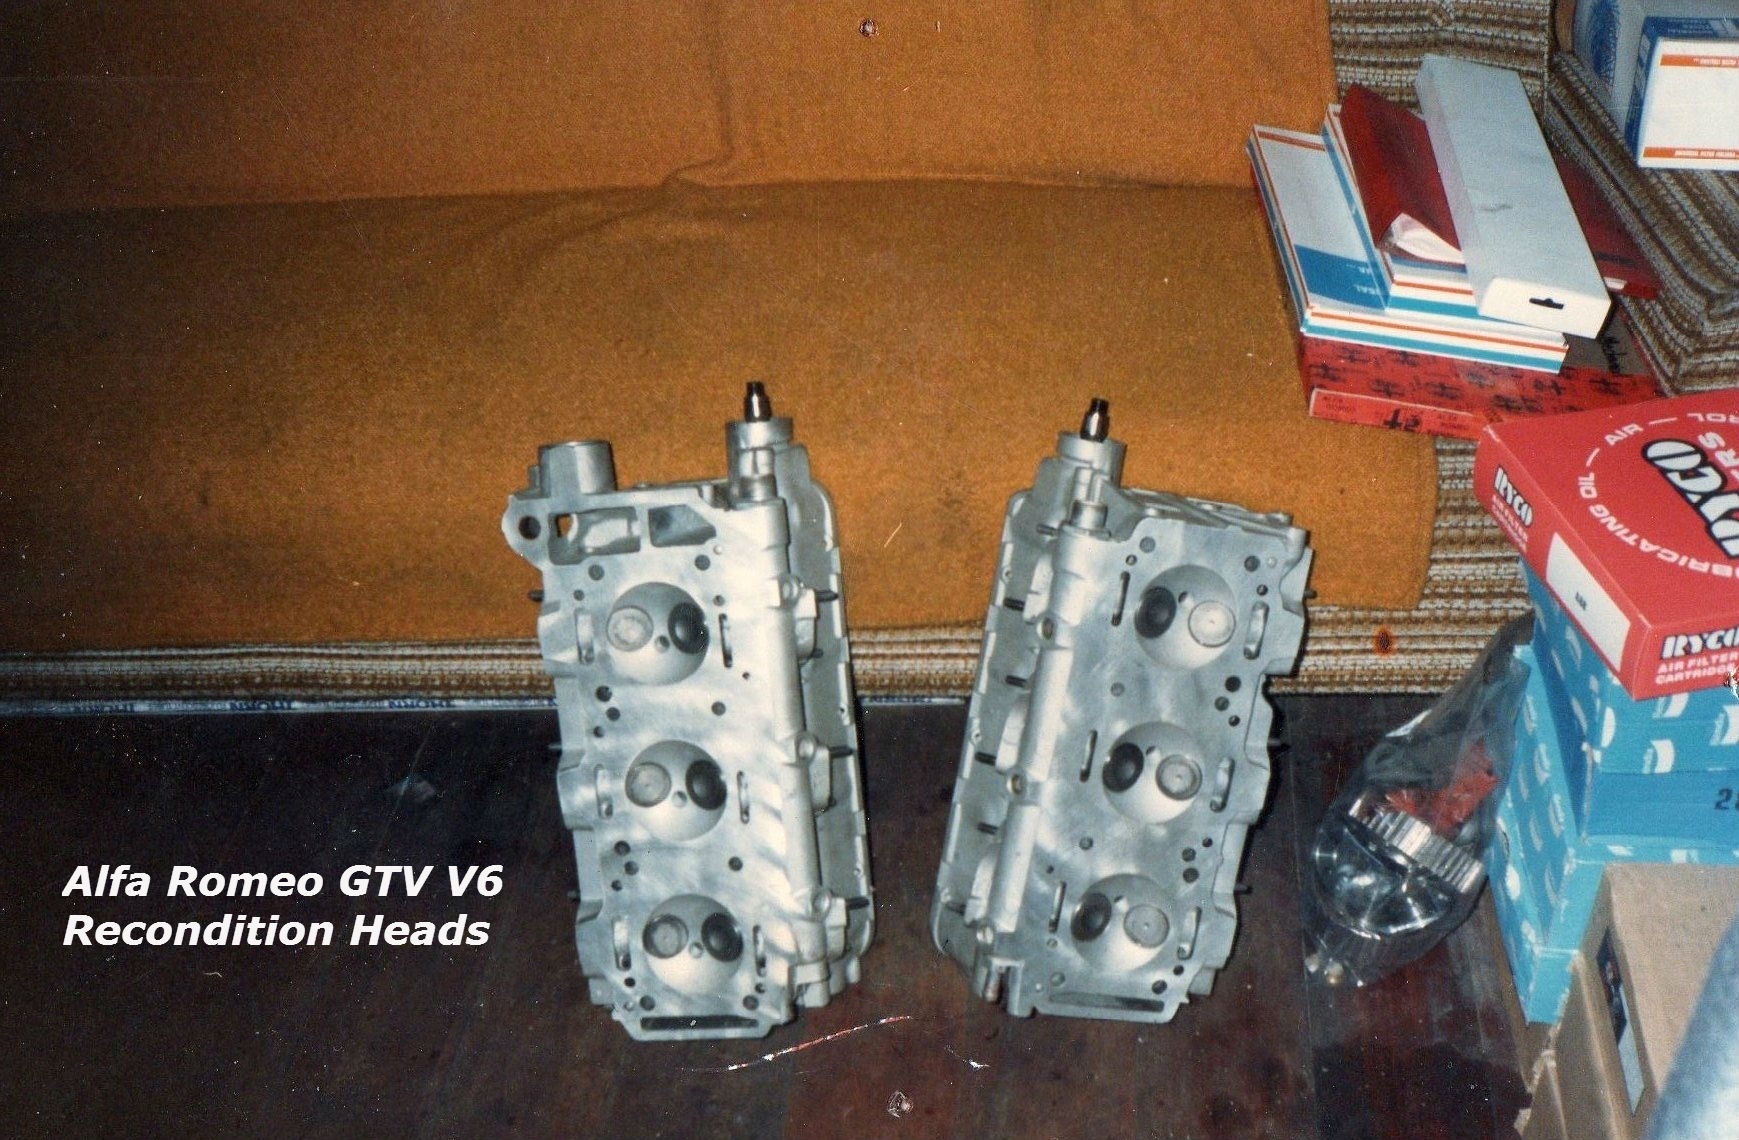 Alfa Romeo GTV V6 Recondition Heads